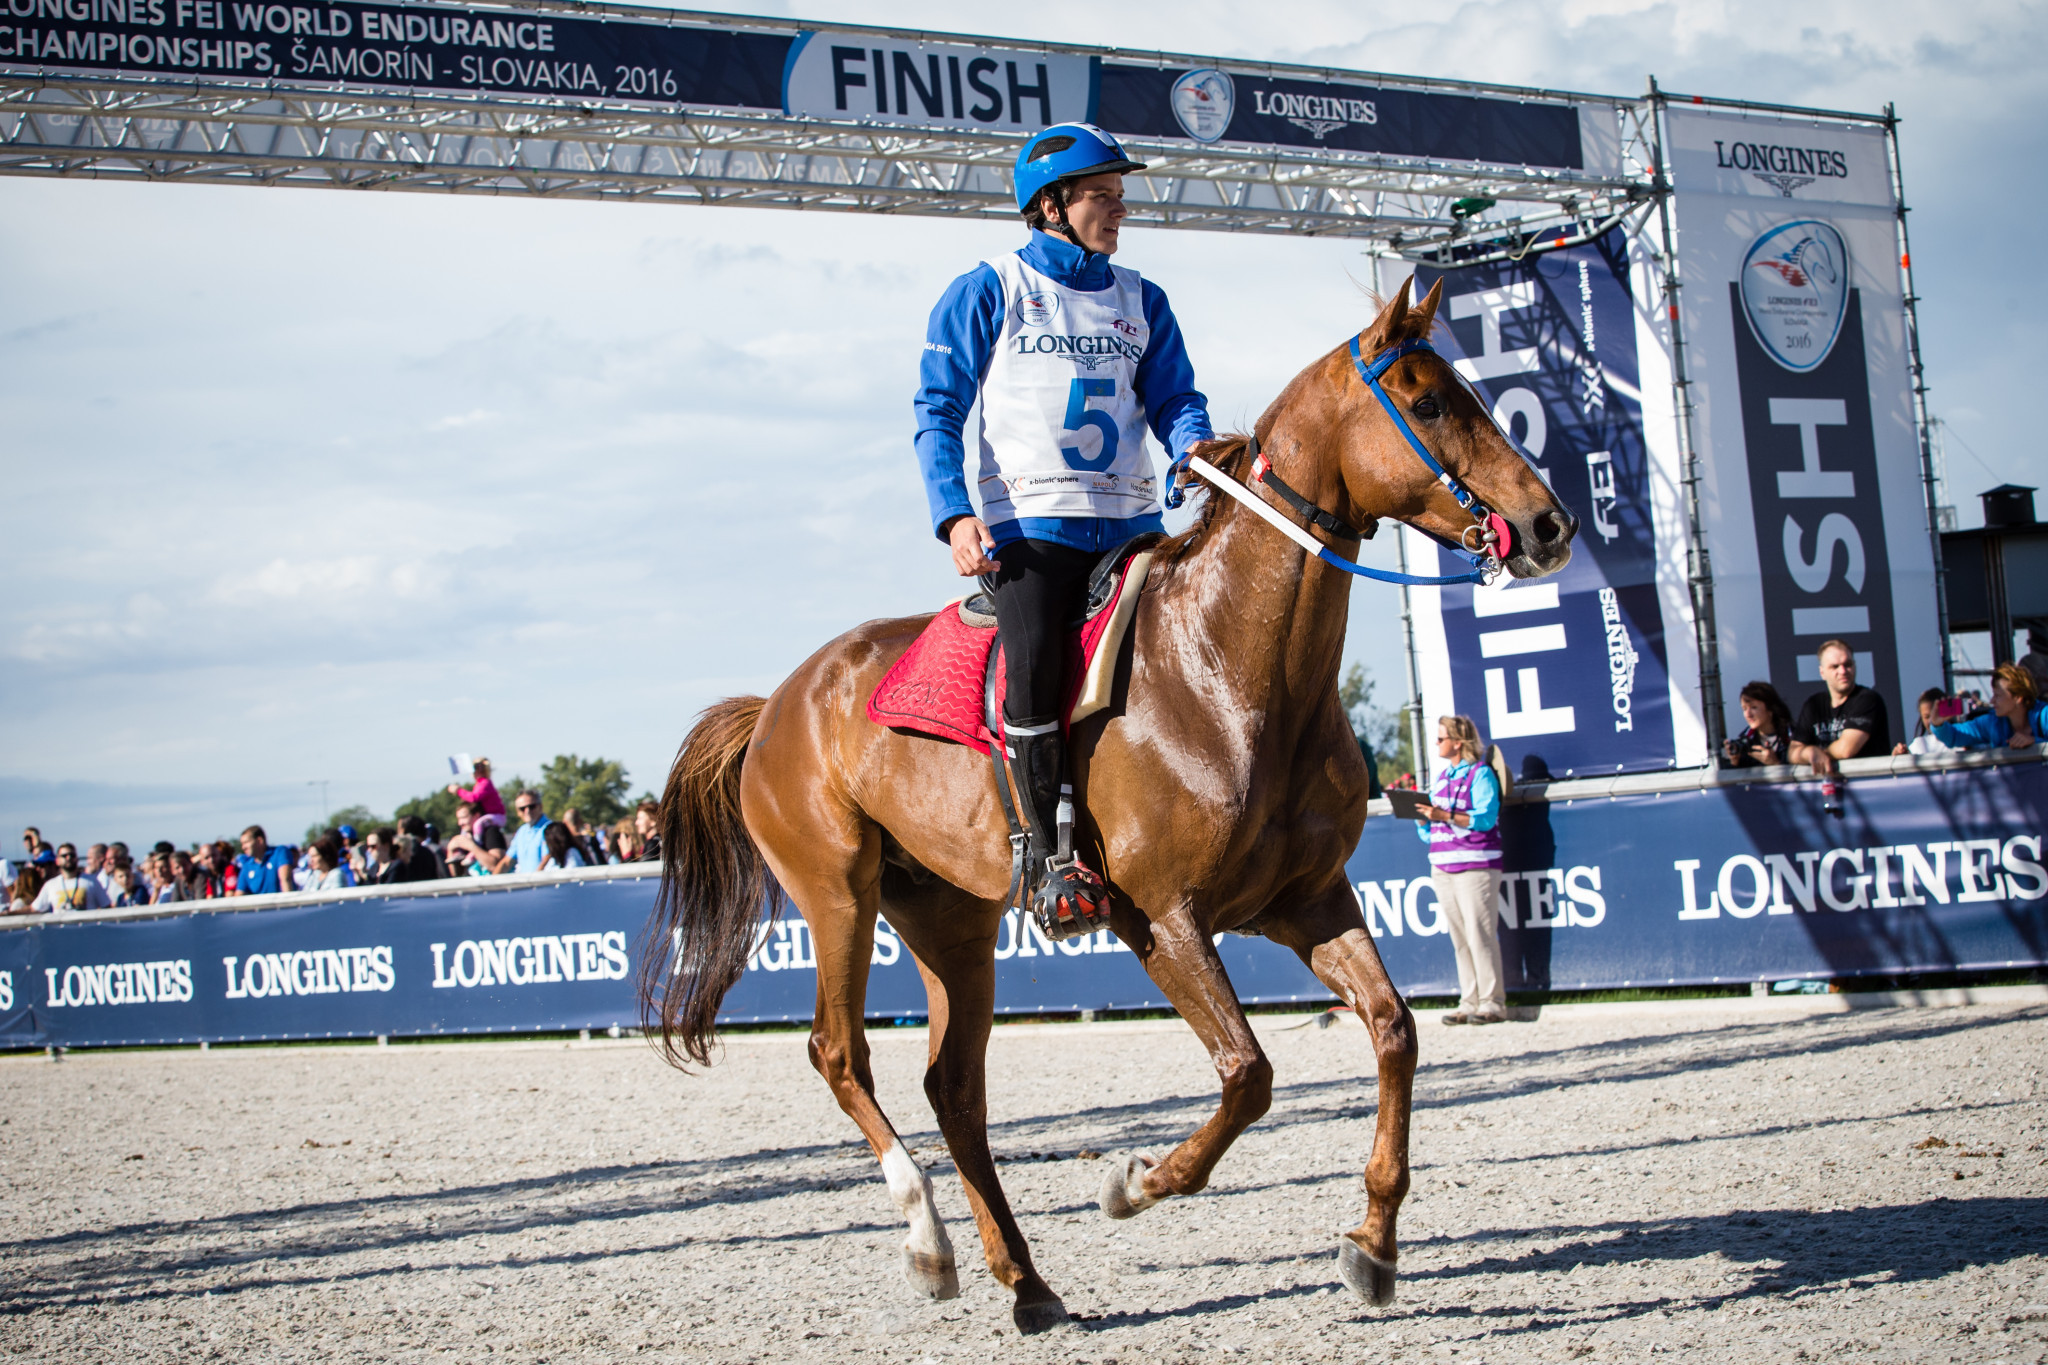 There are calls for endurance racing to focus again on horsemanship and the partnership between horse and human and for there to be less emphasis on winning ©FEI